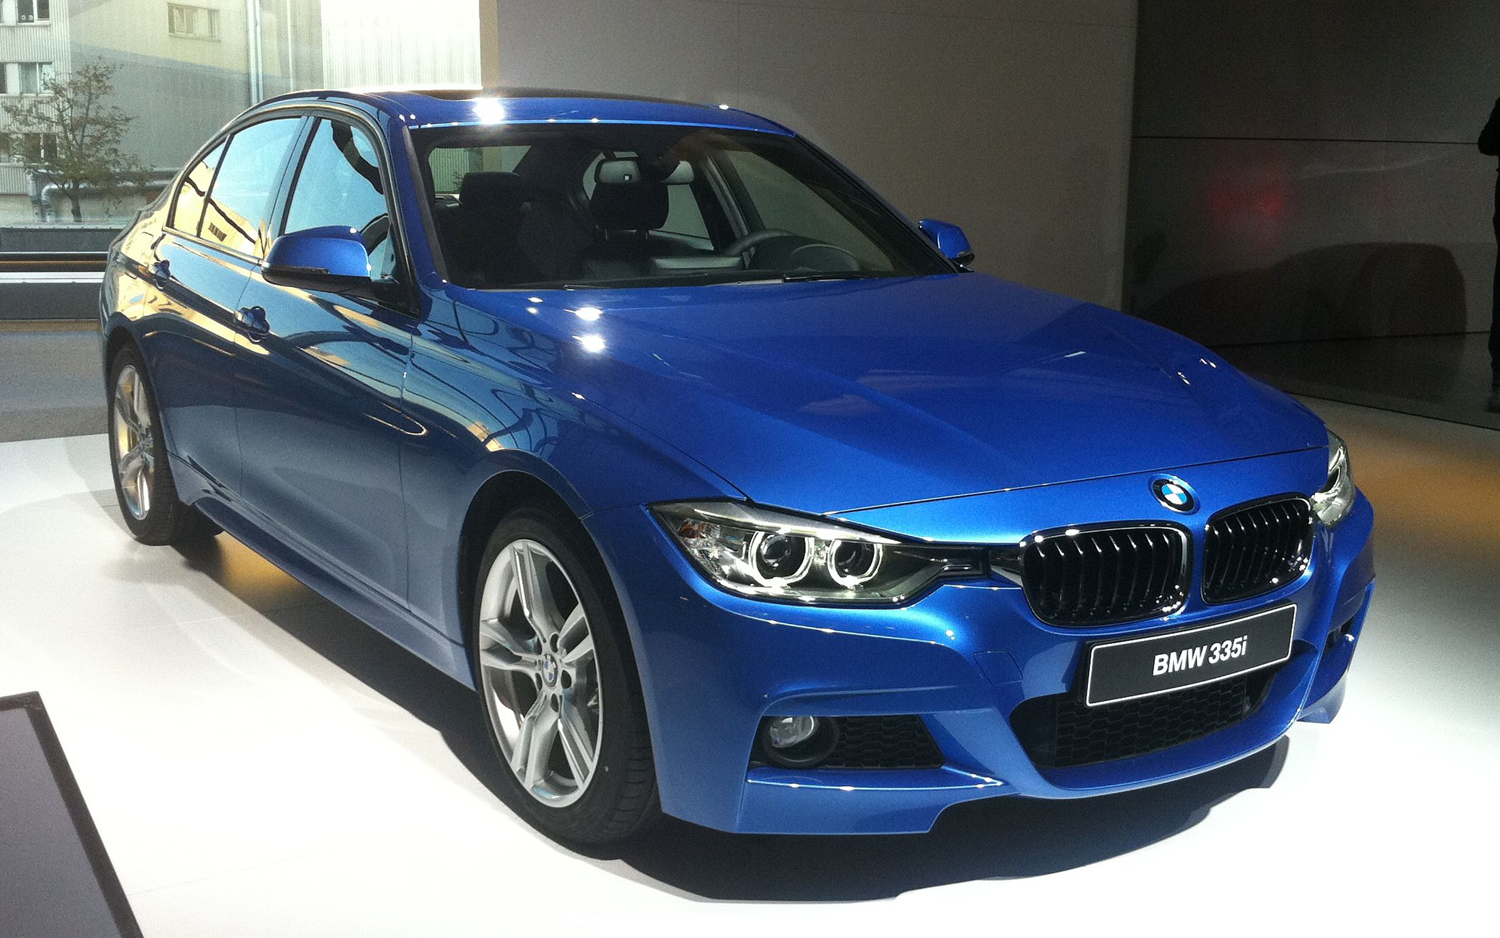 Live From Munich 2012 BMW 3 Series First Impressions